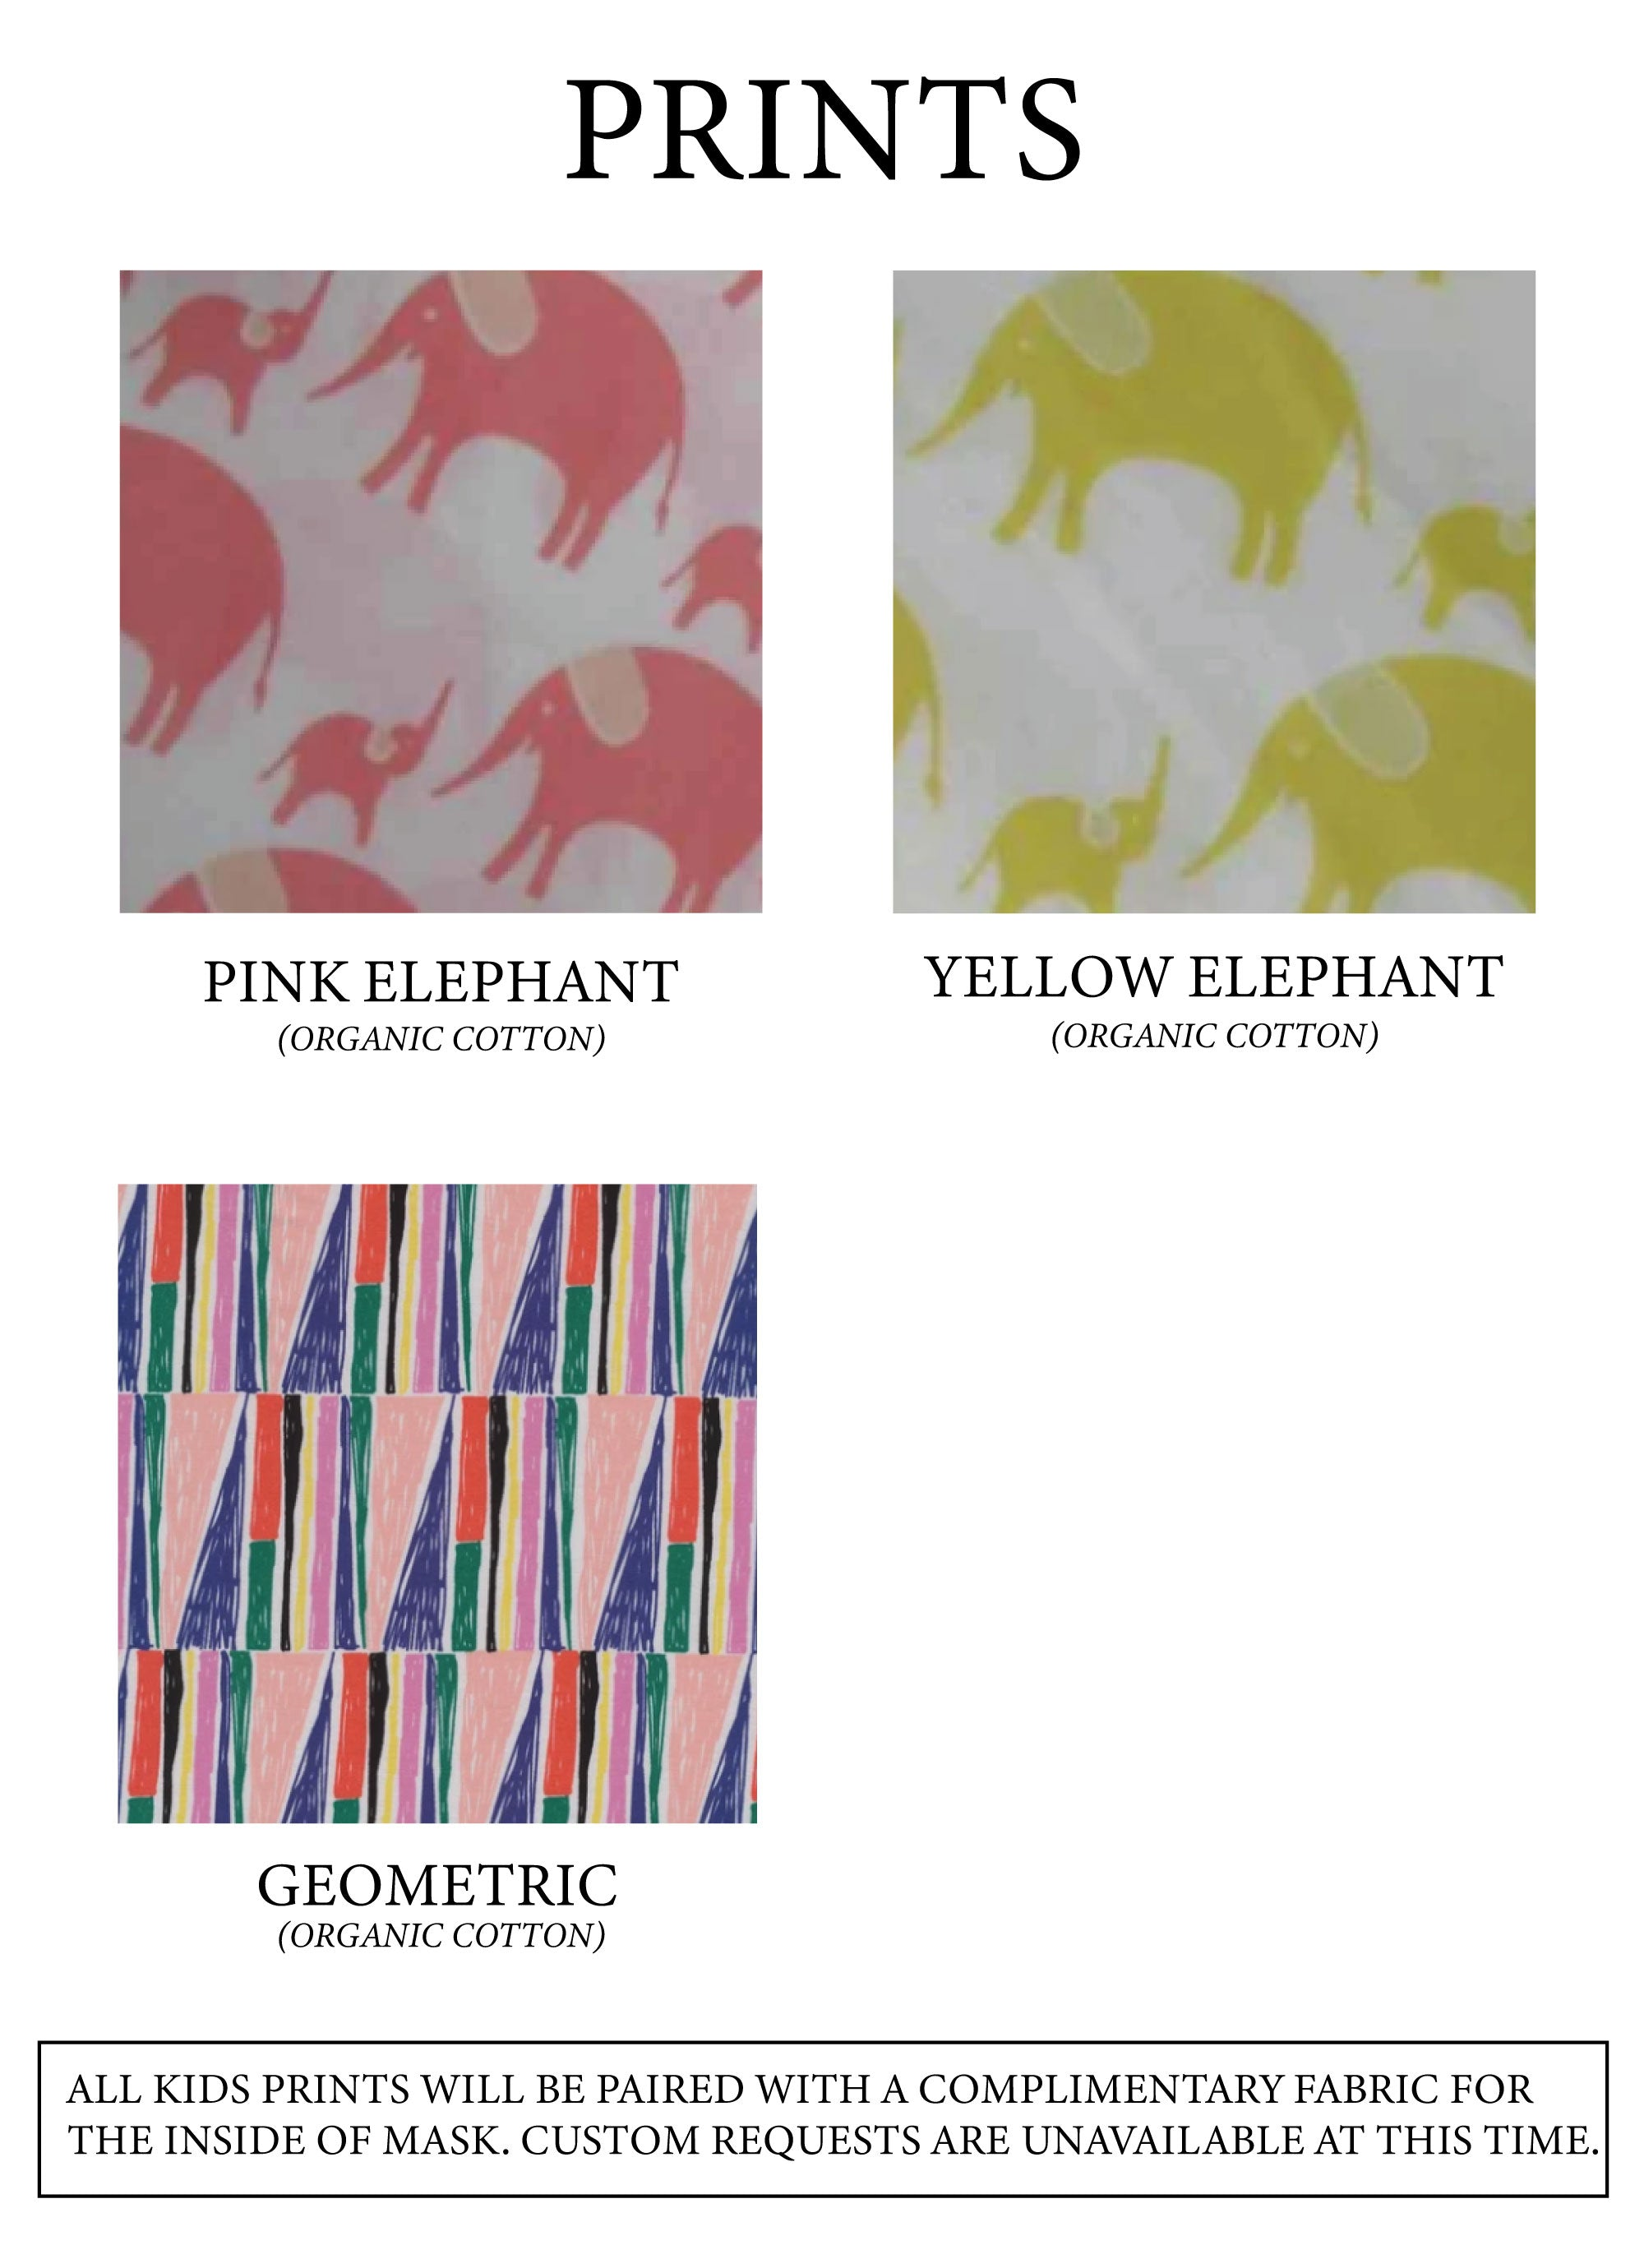 Print fabric options: Pink elephant, Yellow elephant, or Geometric